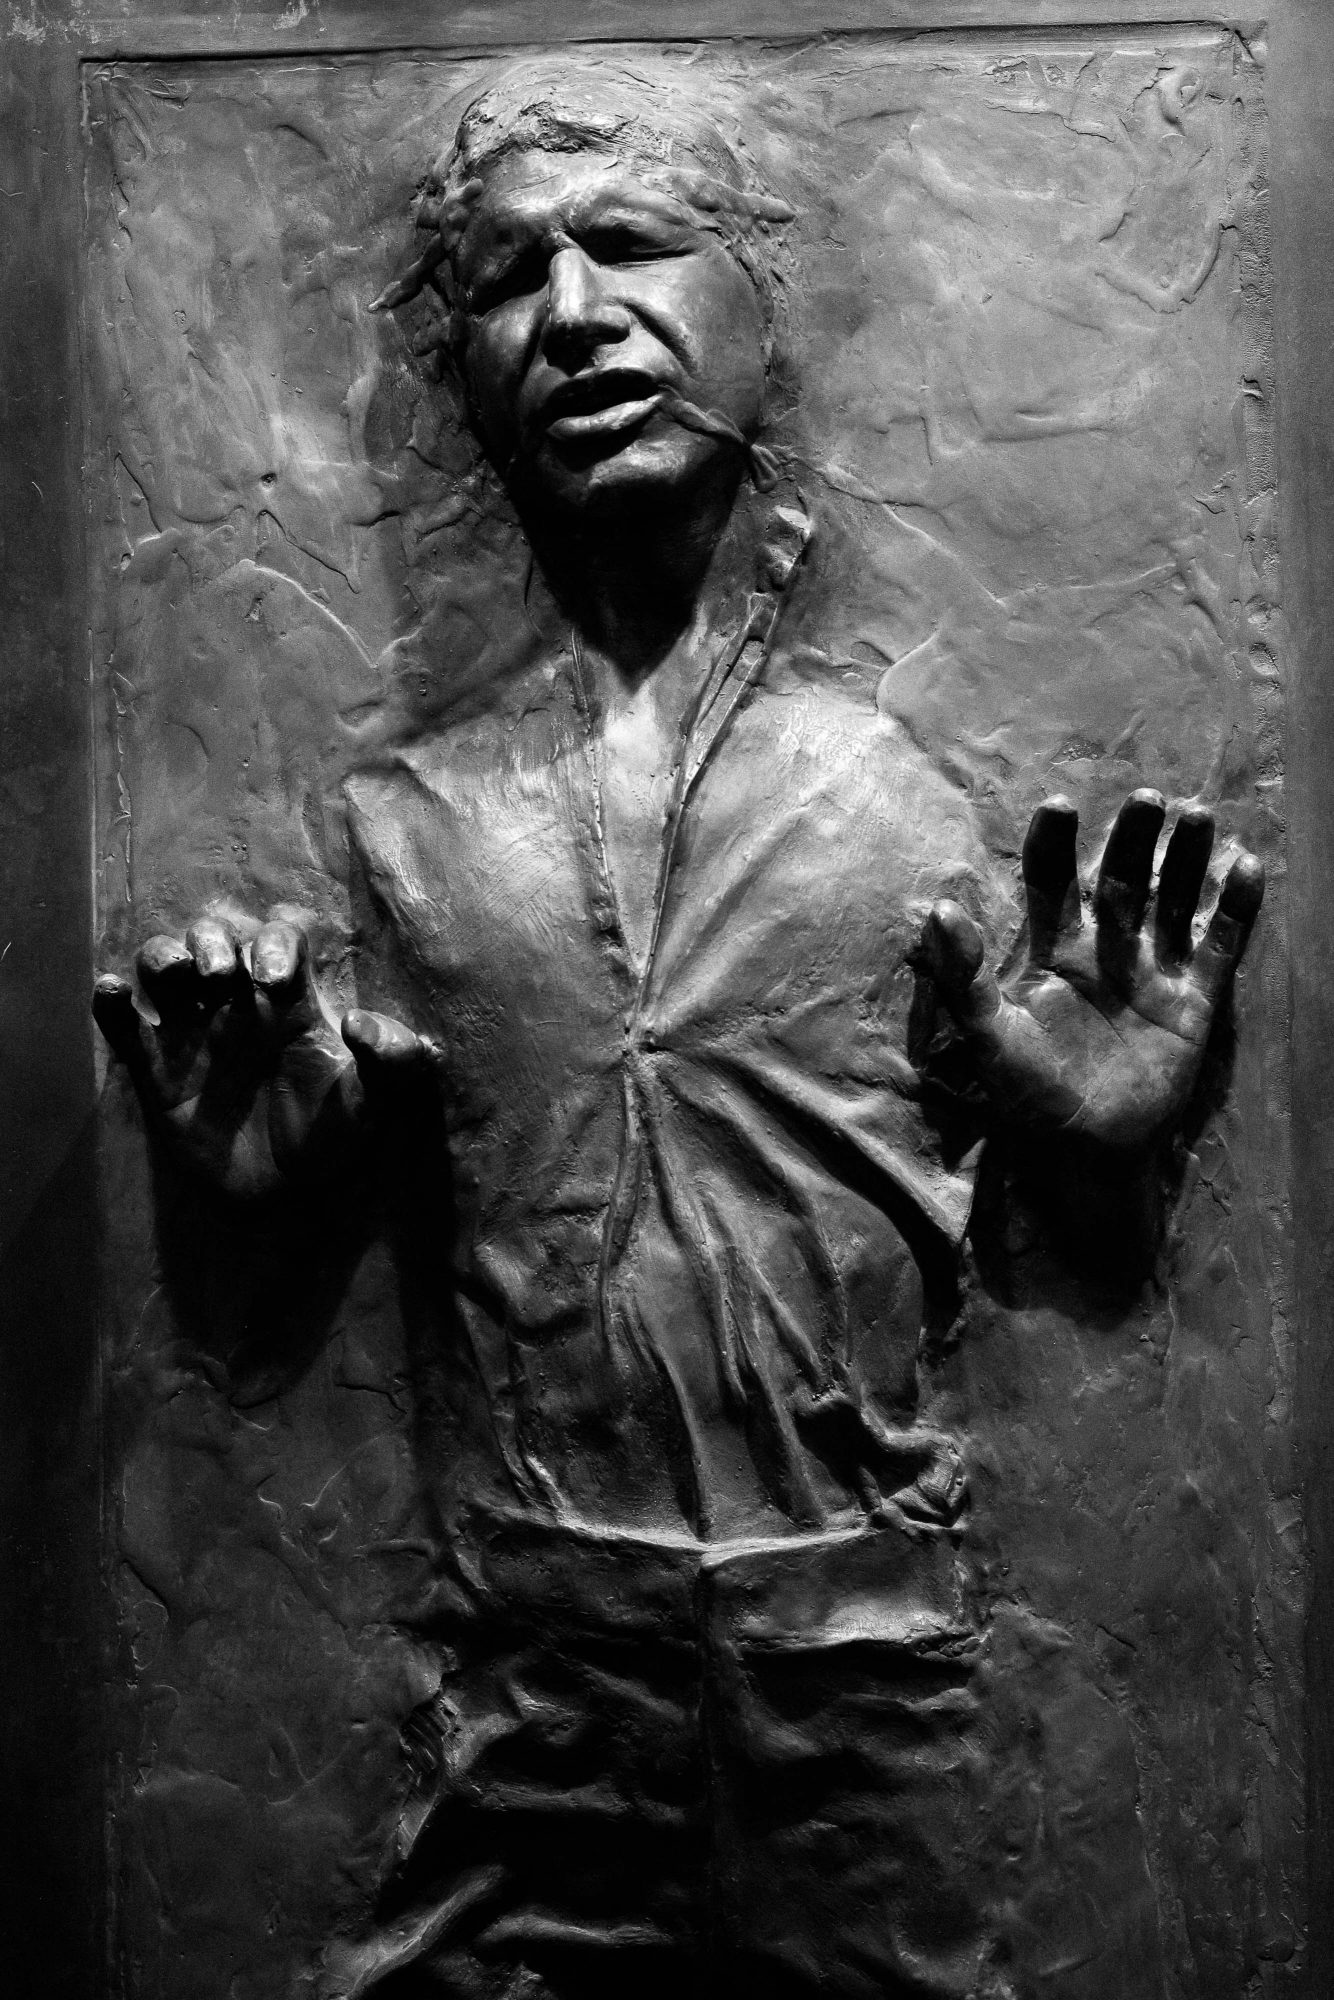 Leica M10 and Star Wars - Hans Solo in Carbonite - photo by Jay Goodrich